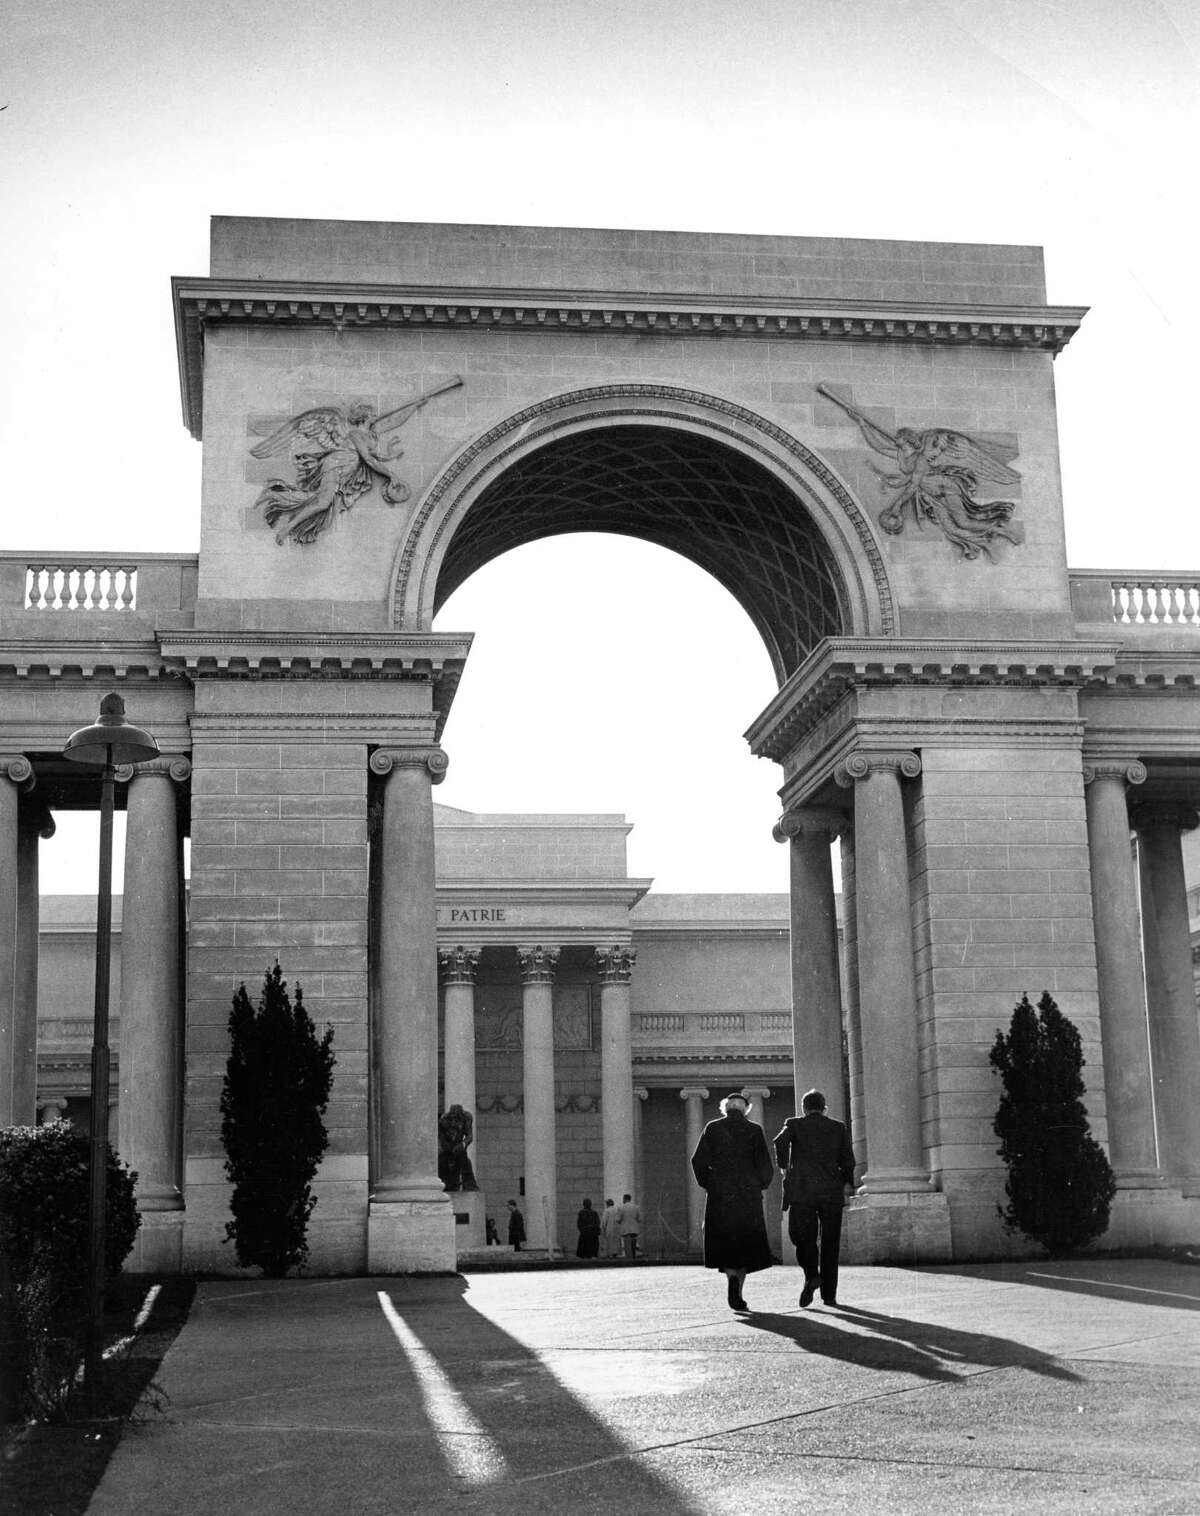 The entrance to the Palace of the Legion of Honor museum.